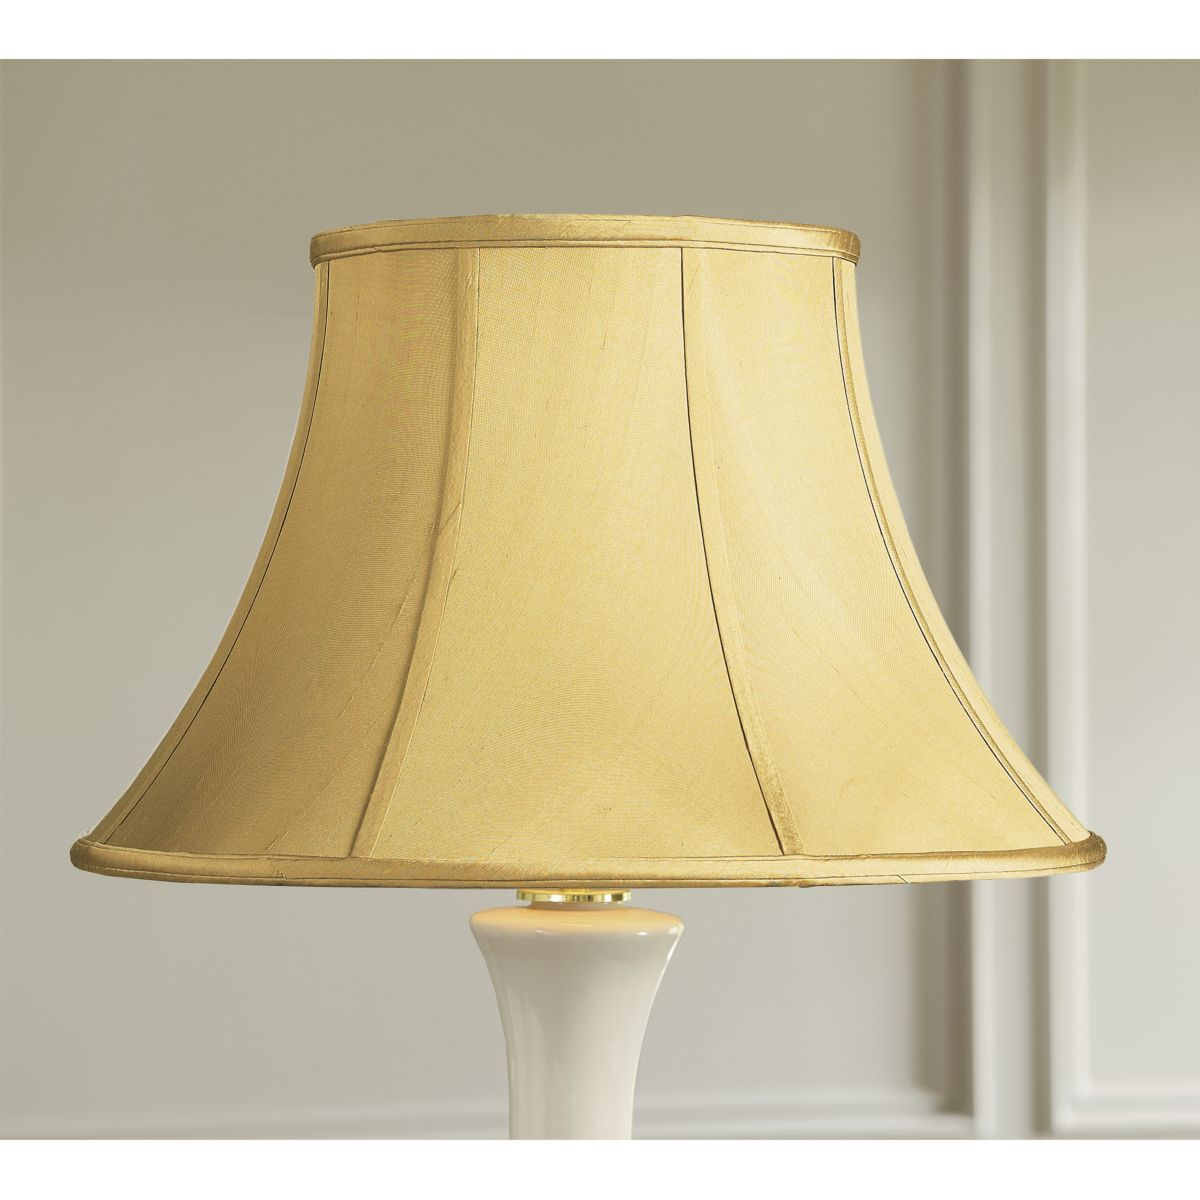 Bell Lamp Shade Captivating Couture Bell Lamp Shade Inspiration